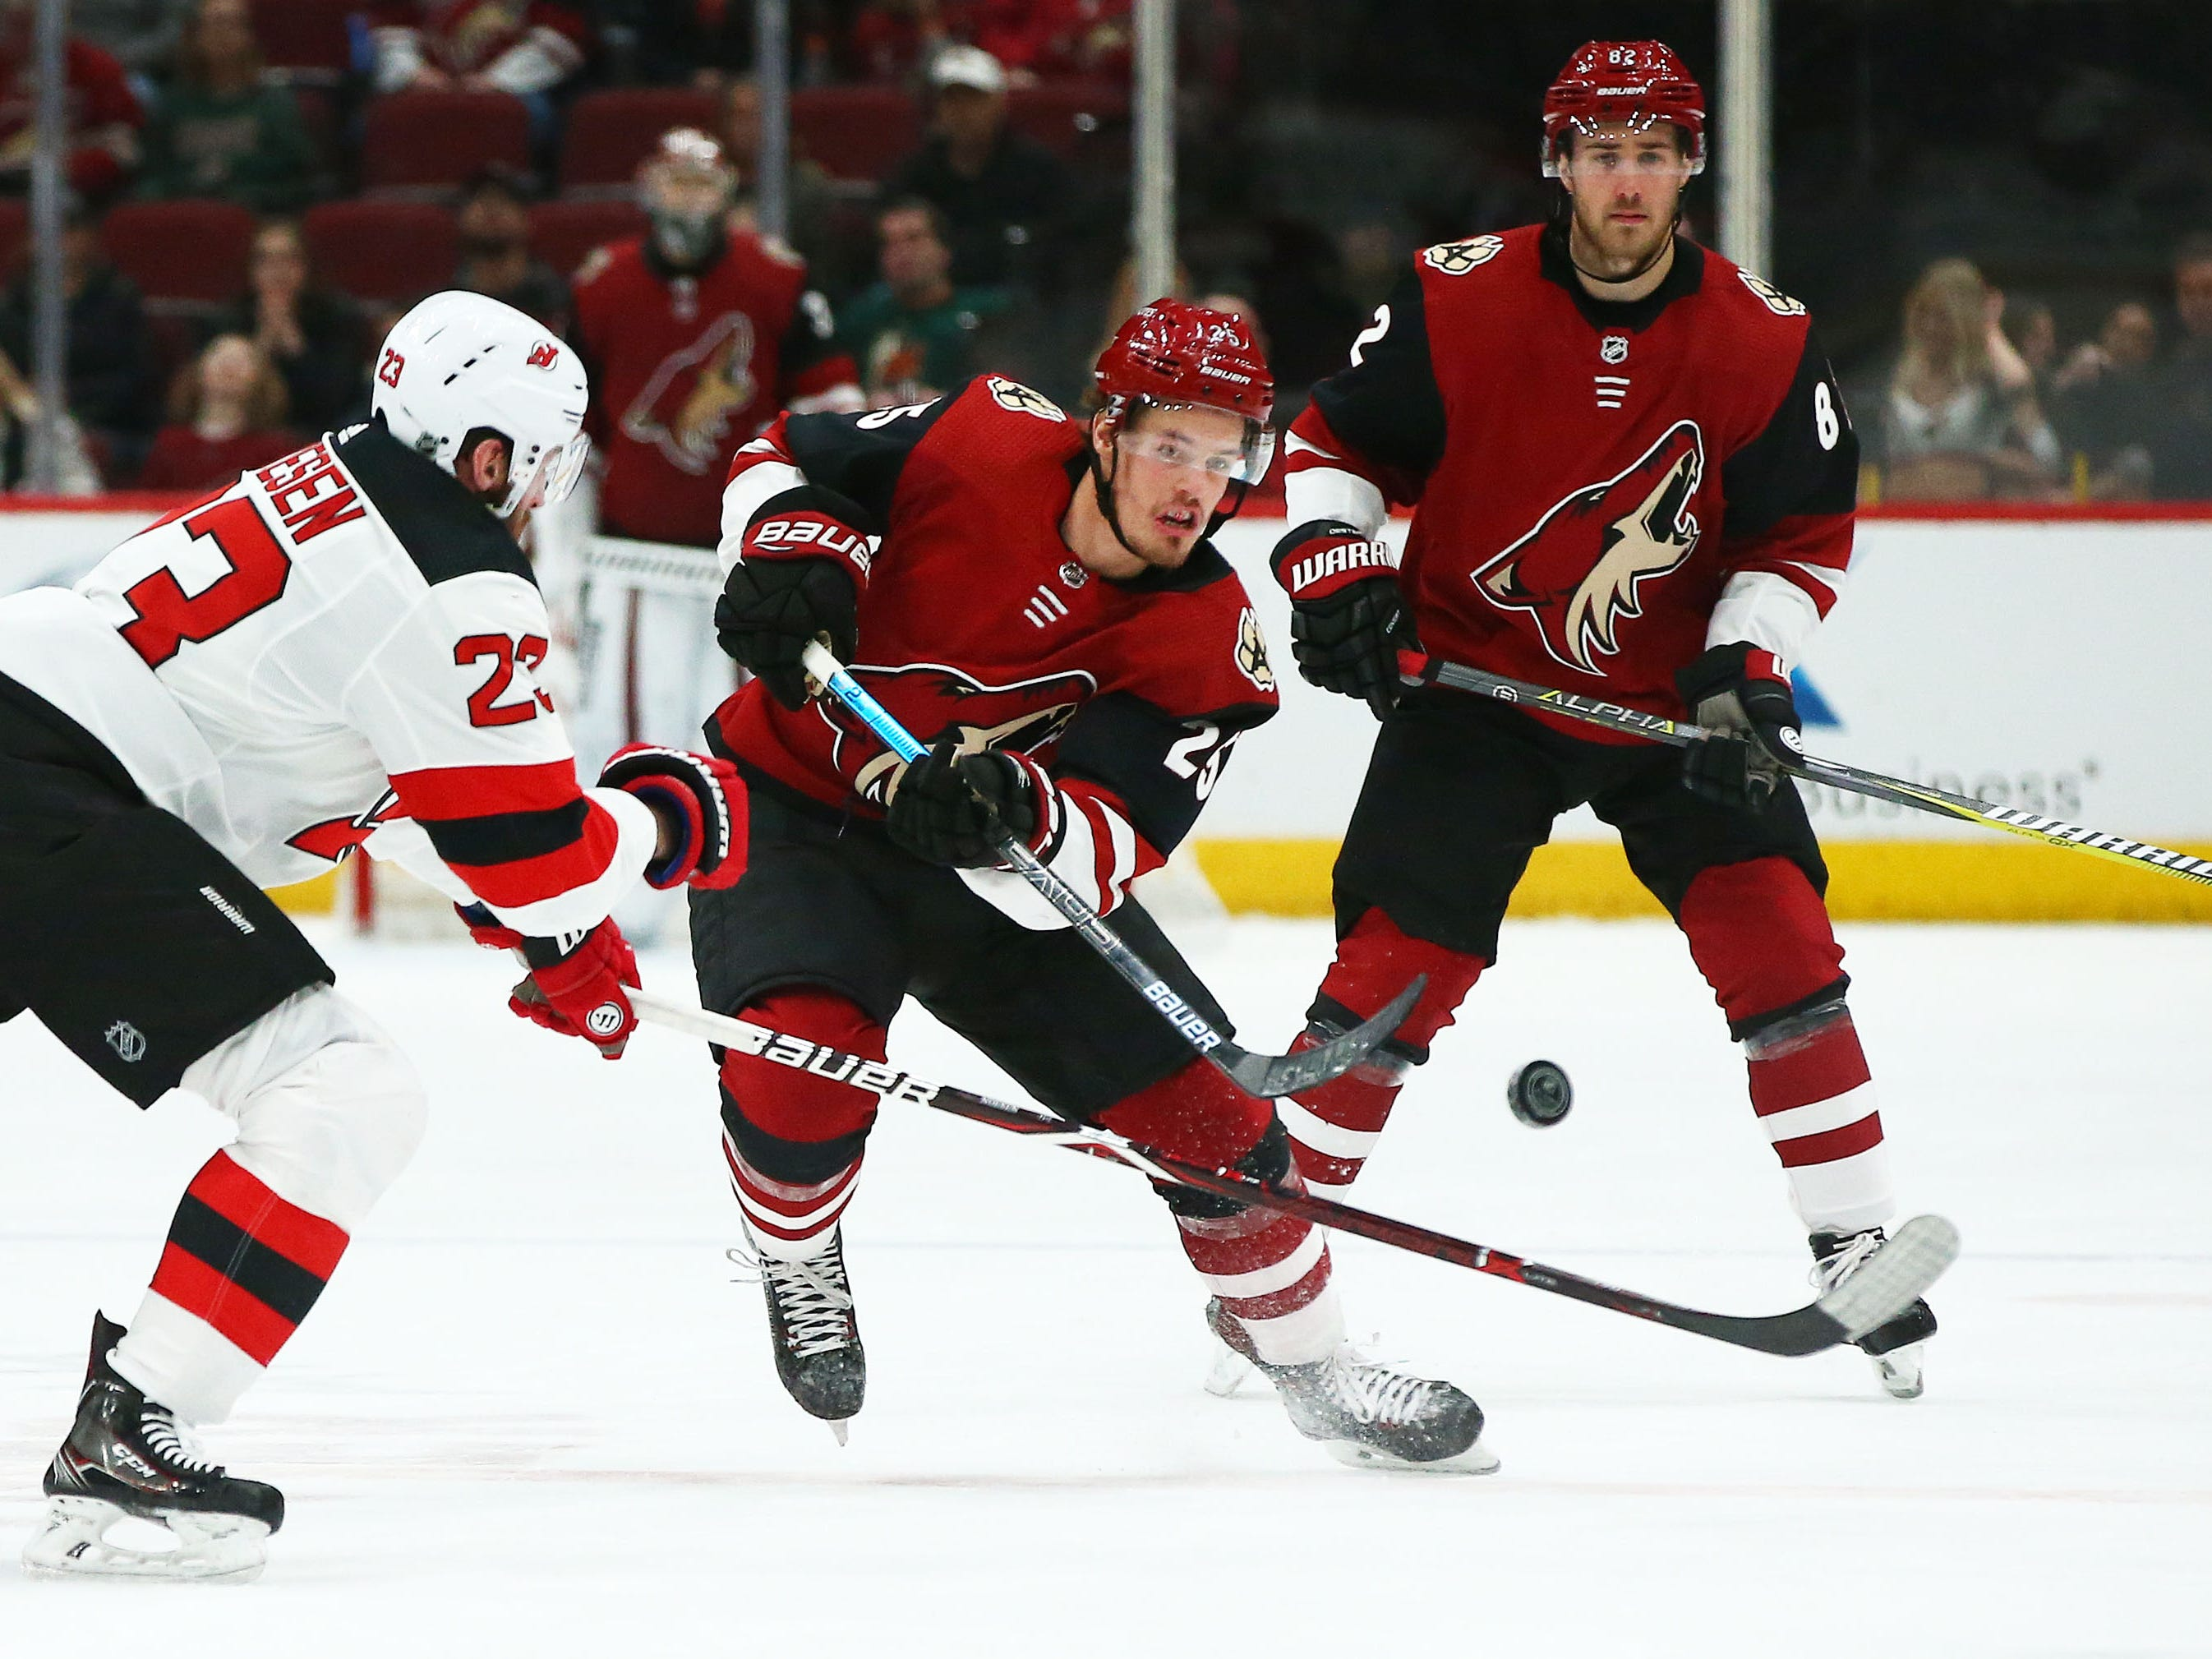 Arizona Coyotes' Nick Cousins (25) controls the puck against the New Jersey Devils in the second period on Jan. 4 at Gila River Arena.